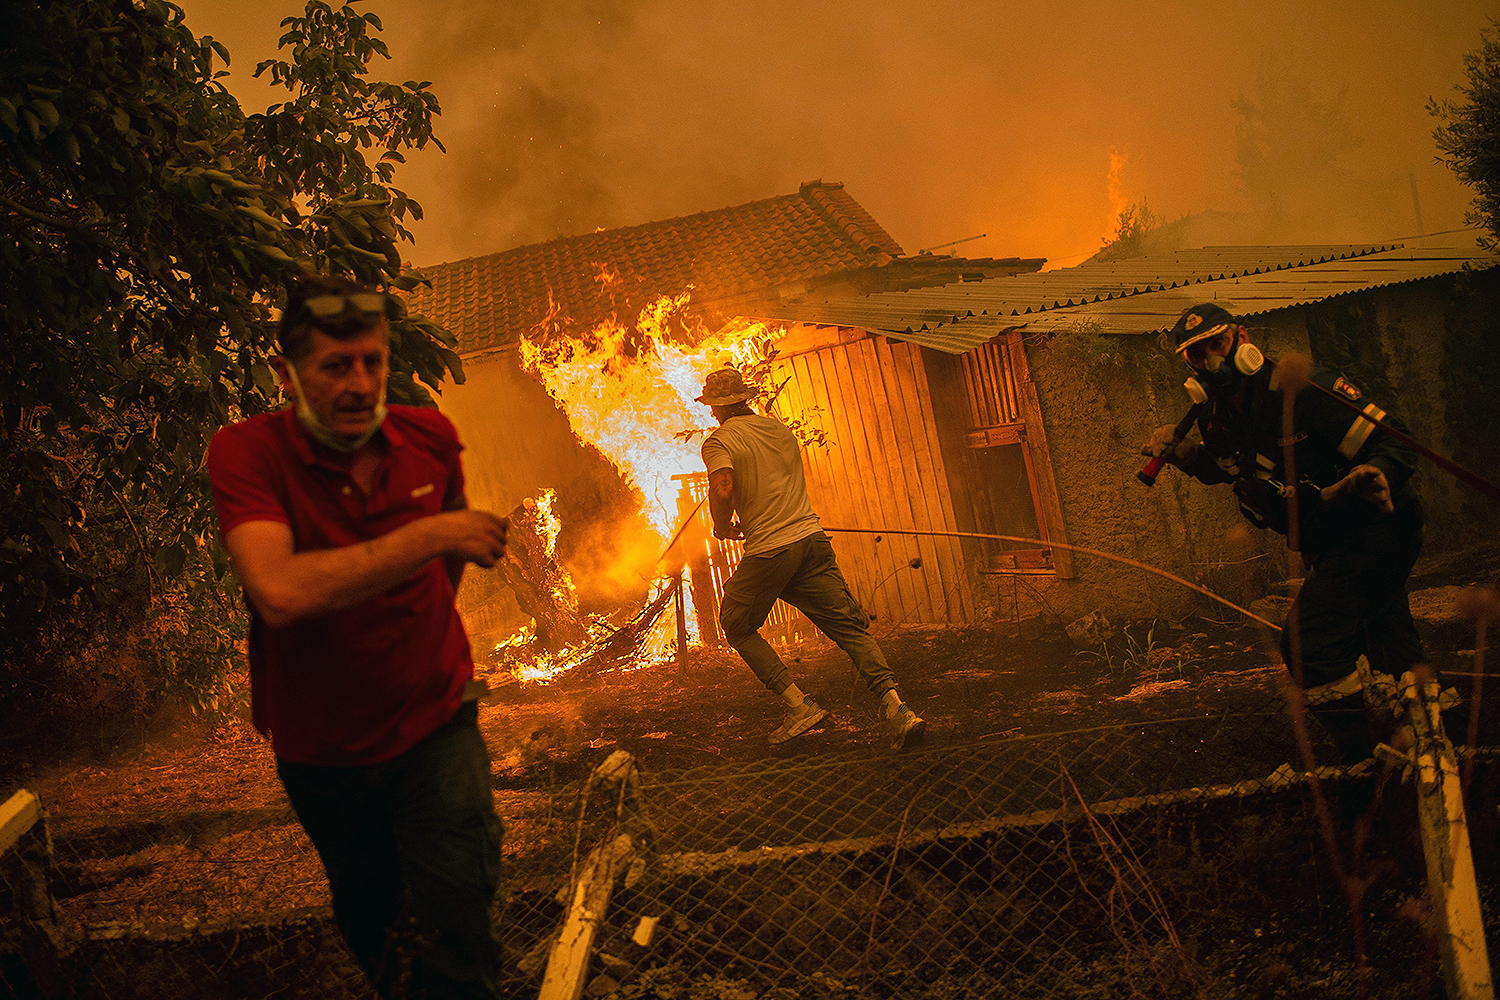 A firefighter and locals rush to a burning house in Greece.